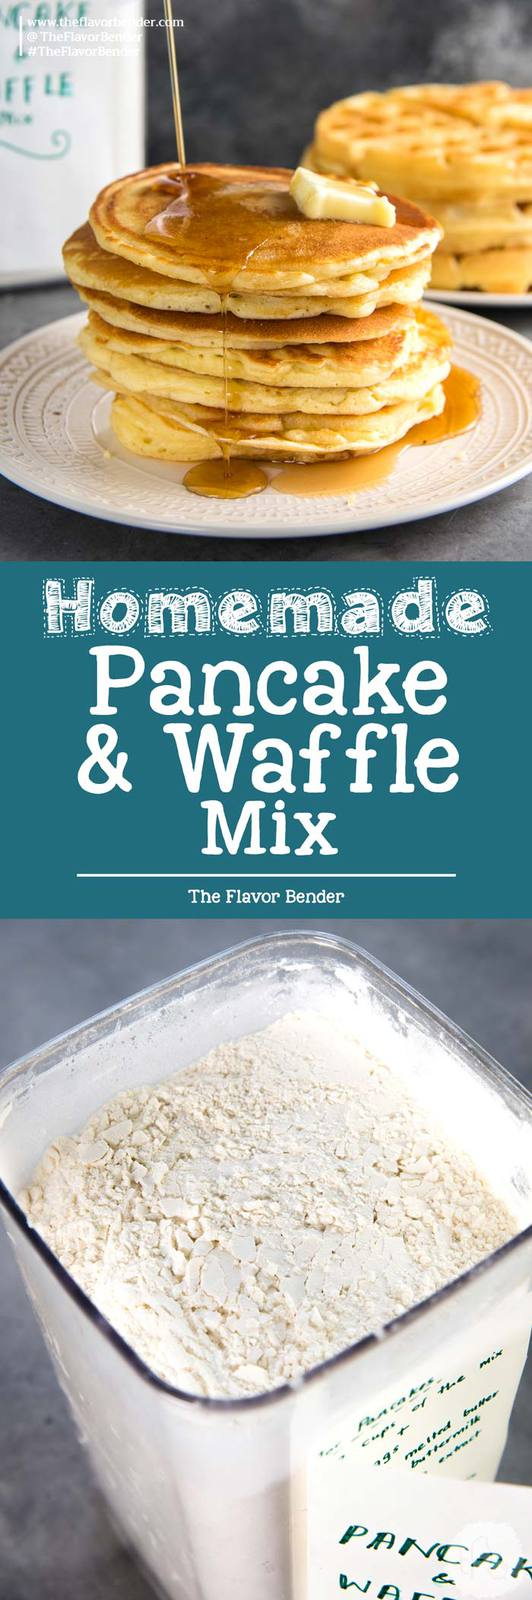 Homemade Pancake Mix / Waffle Mix - The best pancake or waffle mix from scratch that makes fluffy, light pancakes or crispy, light waffles! Far better than store-bought instant pancake mixes. Easy and fool proof, you can have pancakes any day!